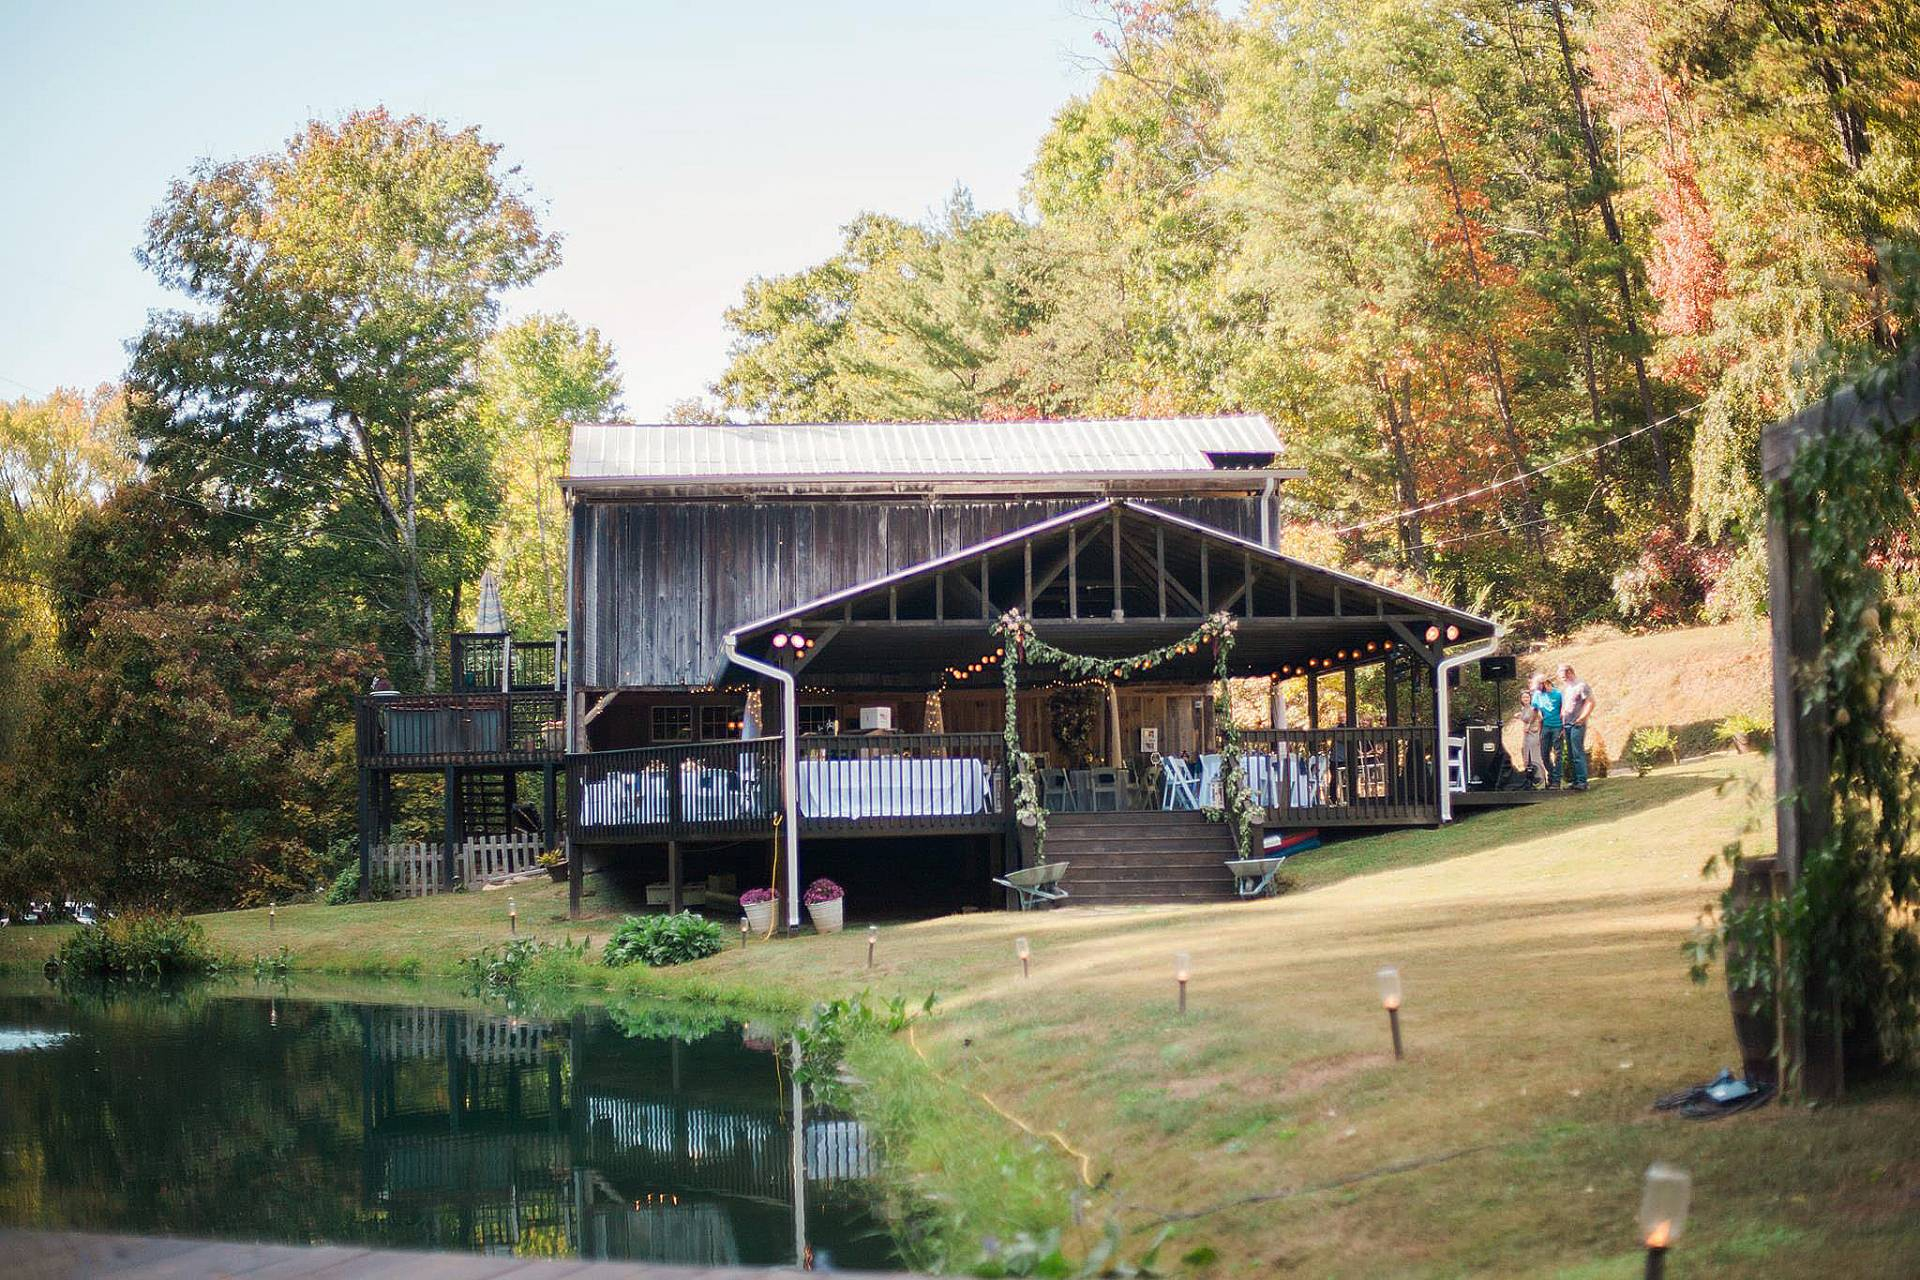 barn weddings, barn wedding ideas, Smoky Mountain barn weddings, wedding guests, outside wedding Smoky Mountains, Smoky Mountain wedding, weddings near Cades Cove, weddings near Smoky Mountains, lakeside wedding, Smoky Mountain lake wedding